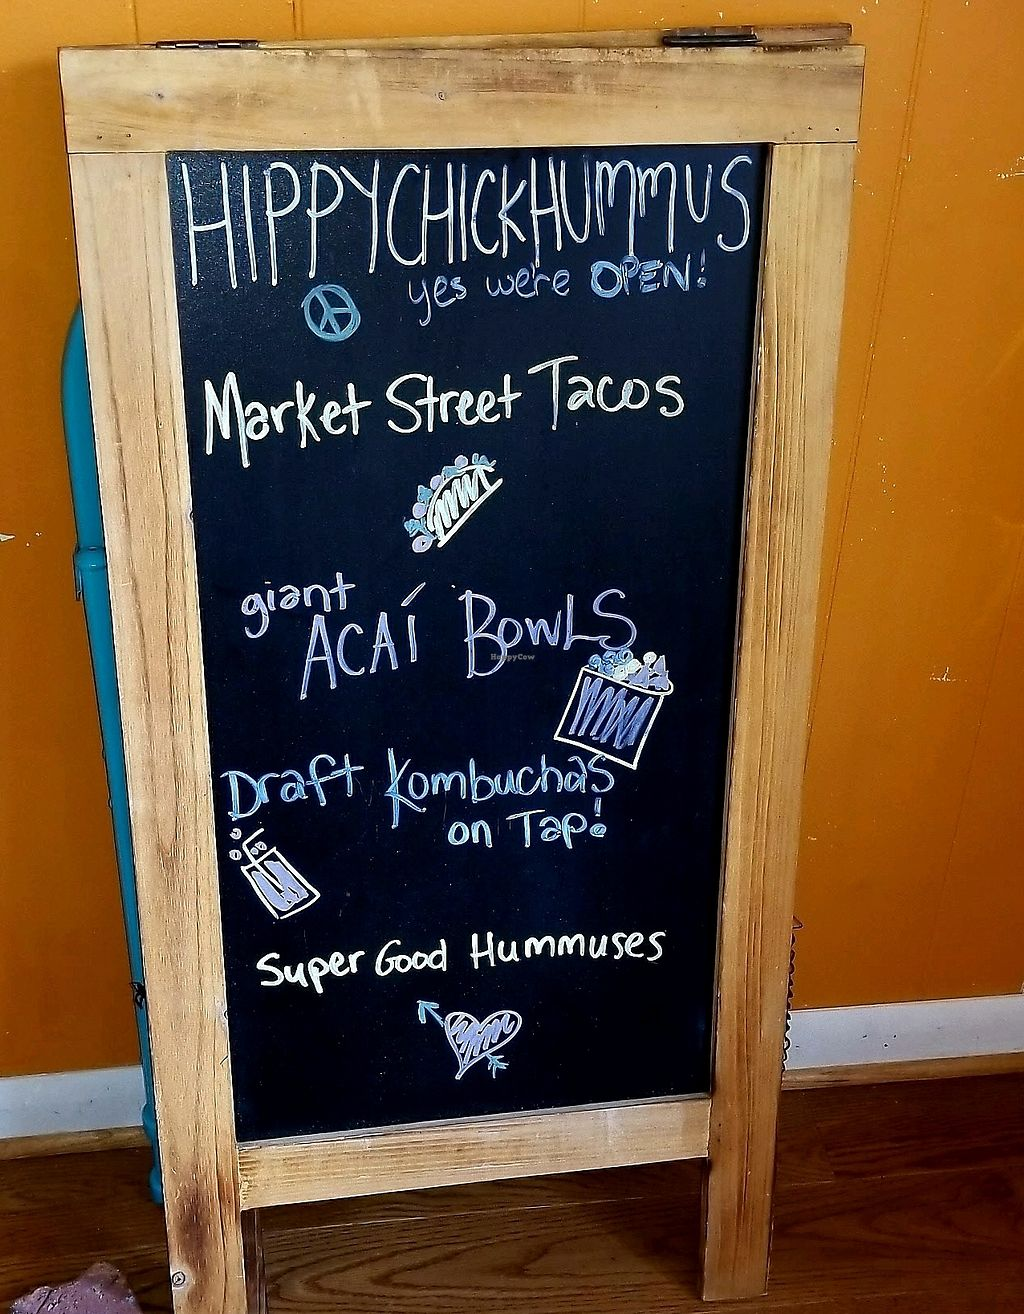 """Photo of Hippy Chick Hummus  by <a href=""""/members/profile/mvineyard"""">mvineyard</a> <br/>Hippy Chick Menu board <br/> October 9, 2017  - <a href='/contact/abuse/image/96930/313743'>Report</a>"""